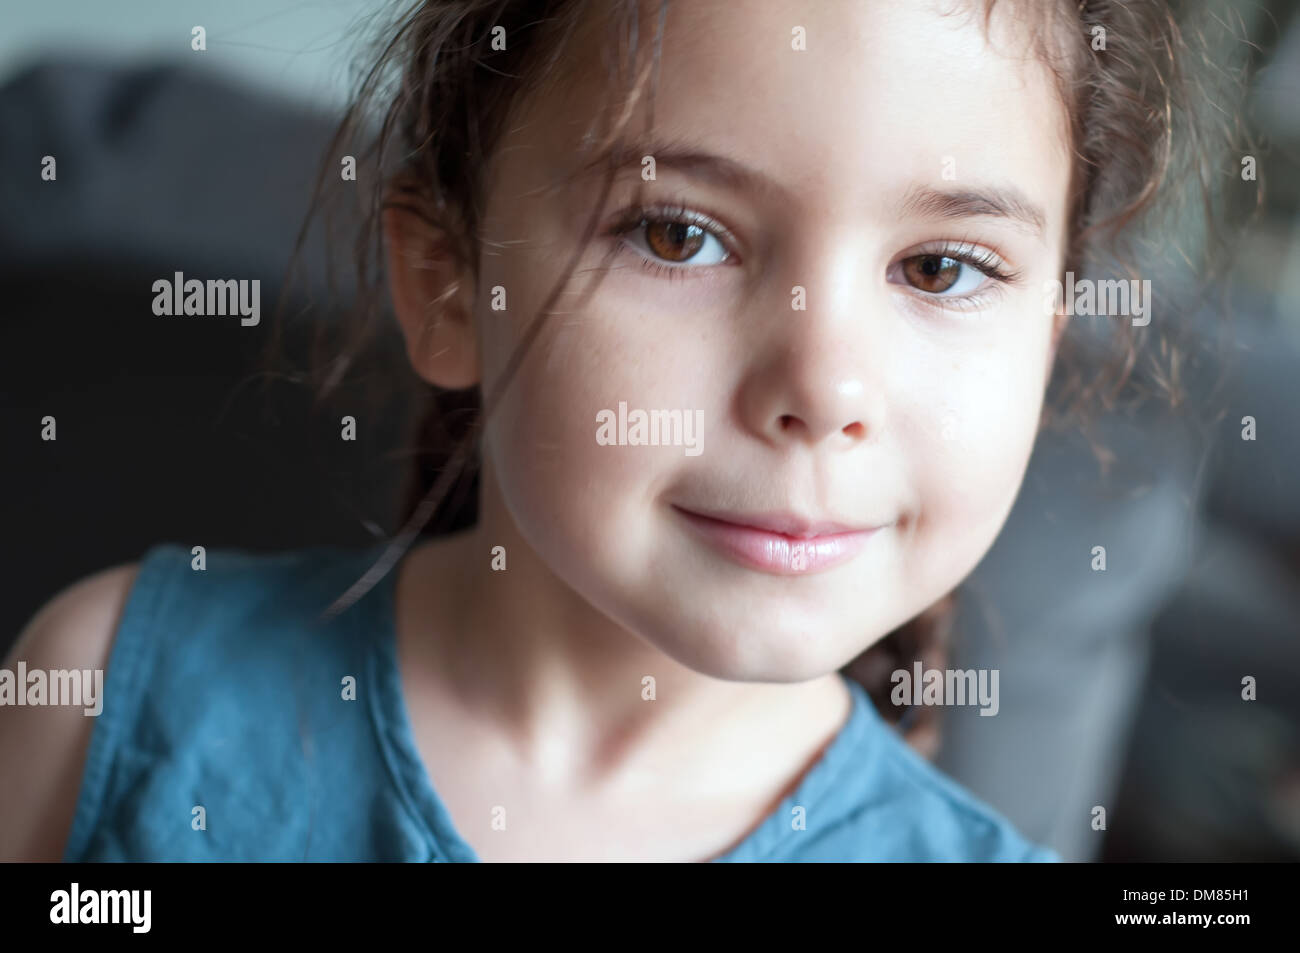 Child, six years old portrait Stock Photo